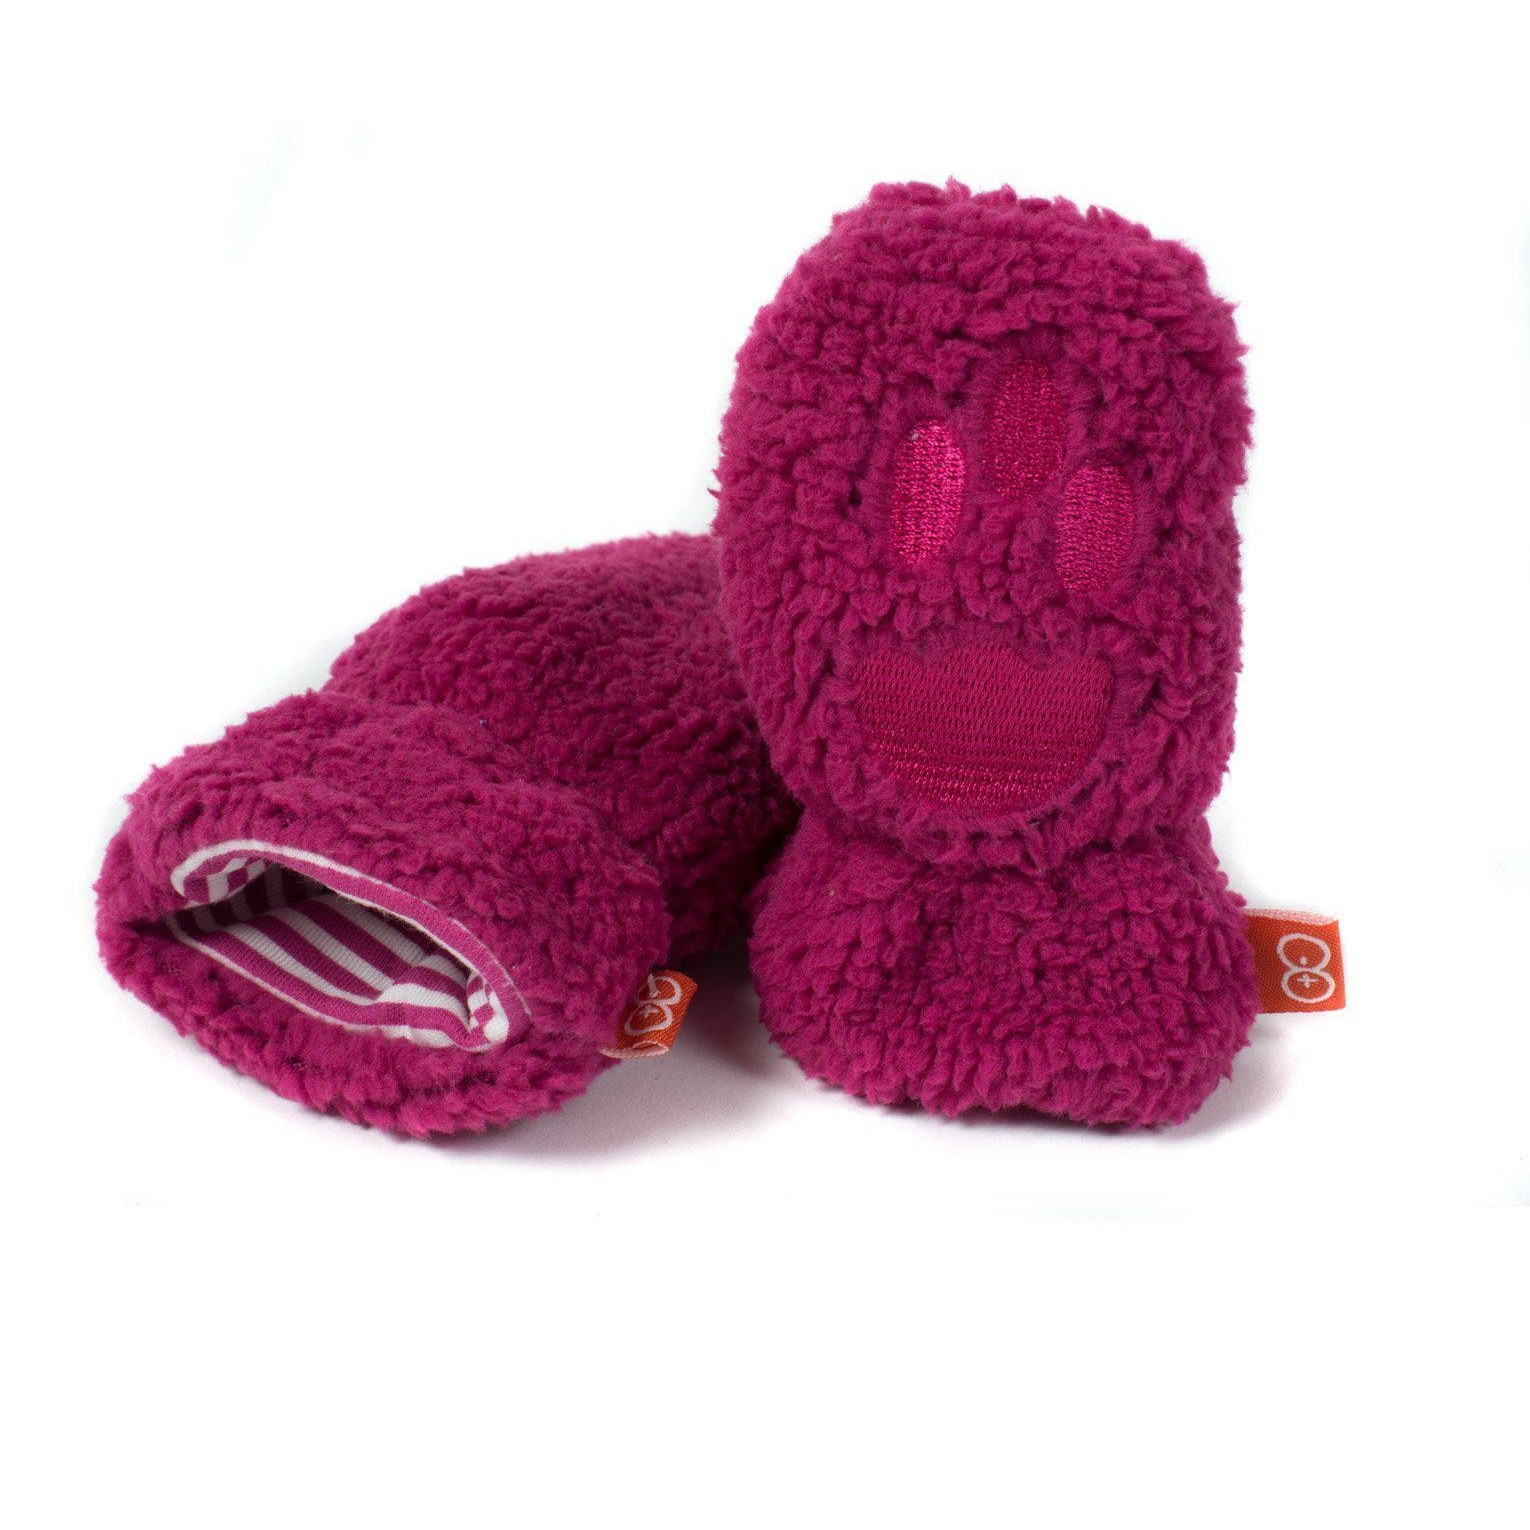 Magnetic Me Fleece Magnetic Mittens (Raspberry)